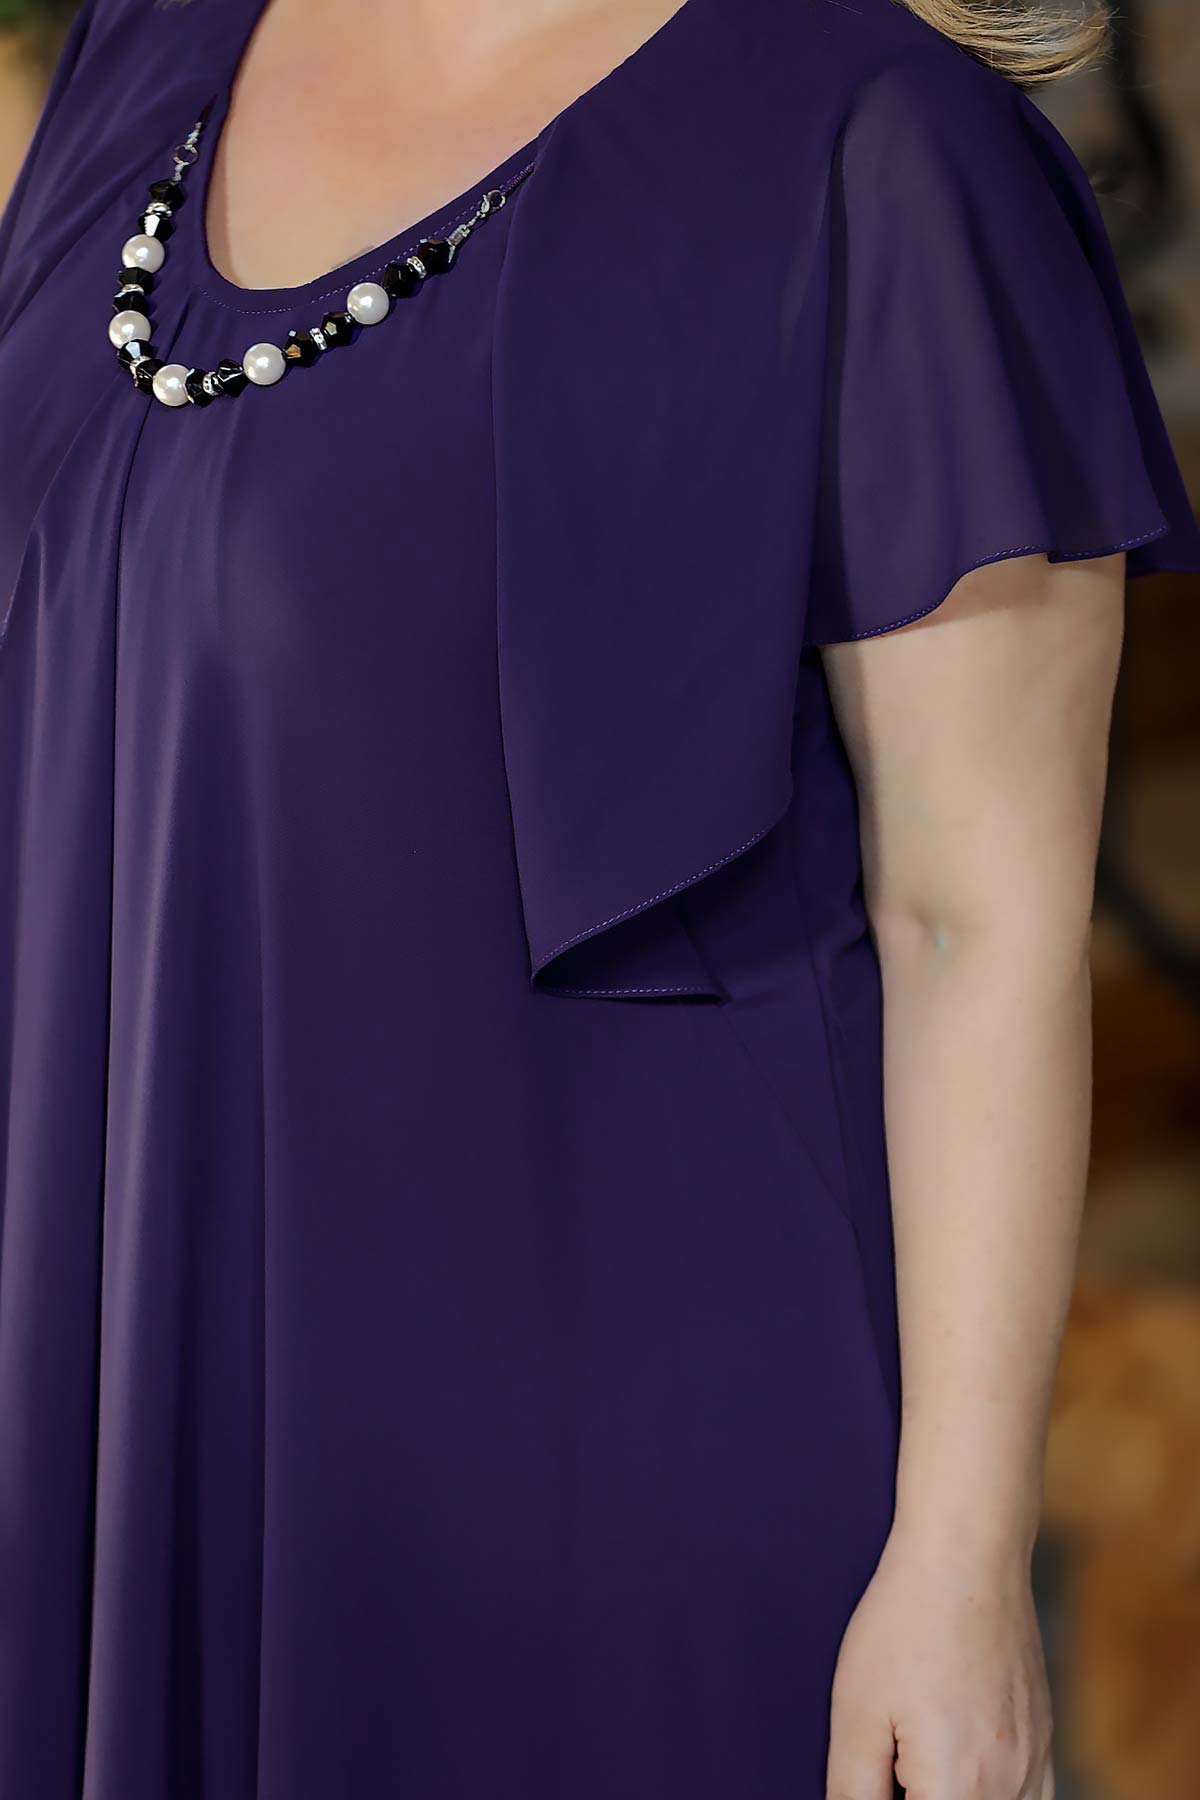 Oversize Collar Accessory Detail Purple Dress